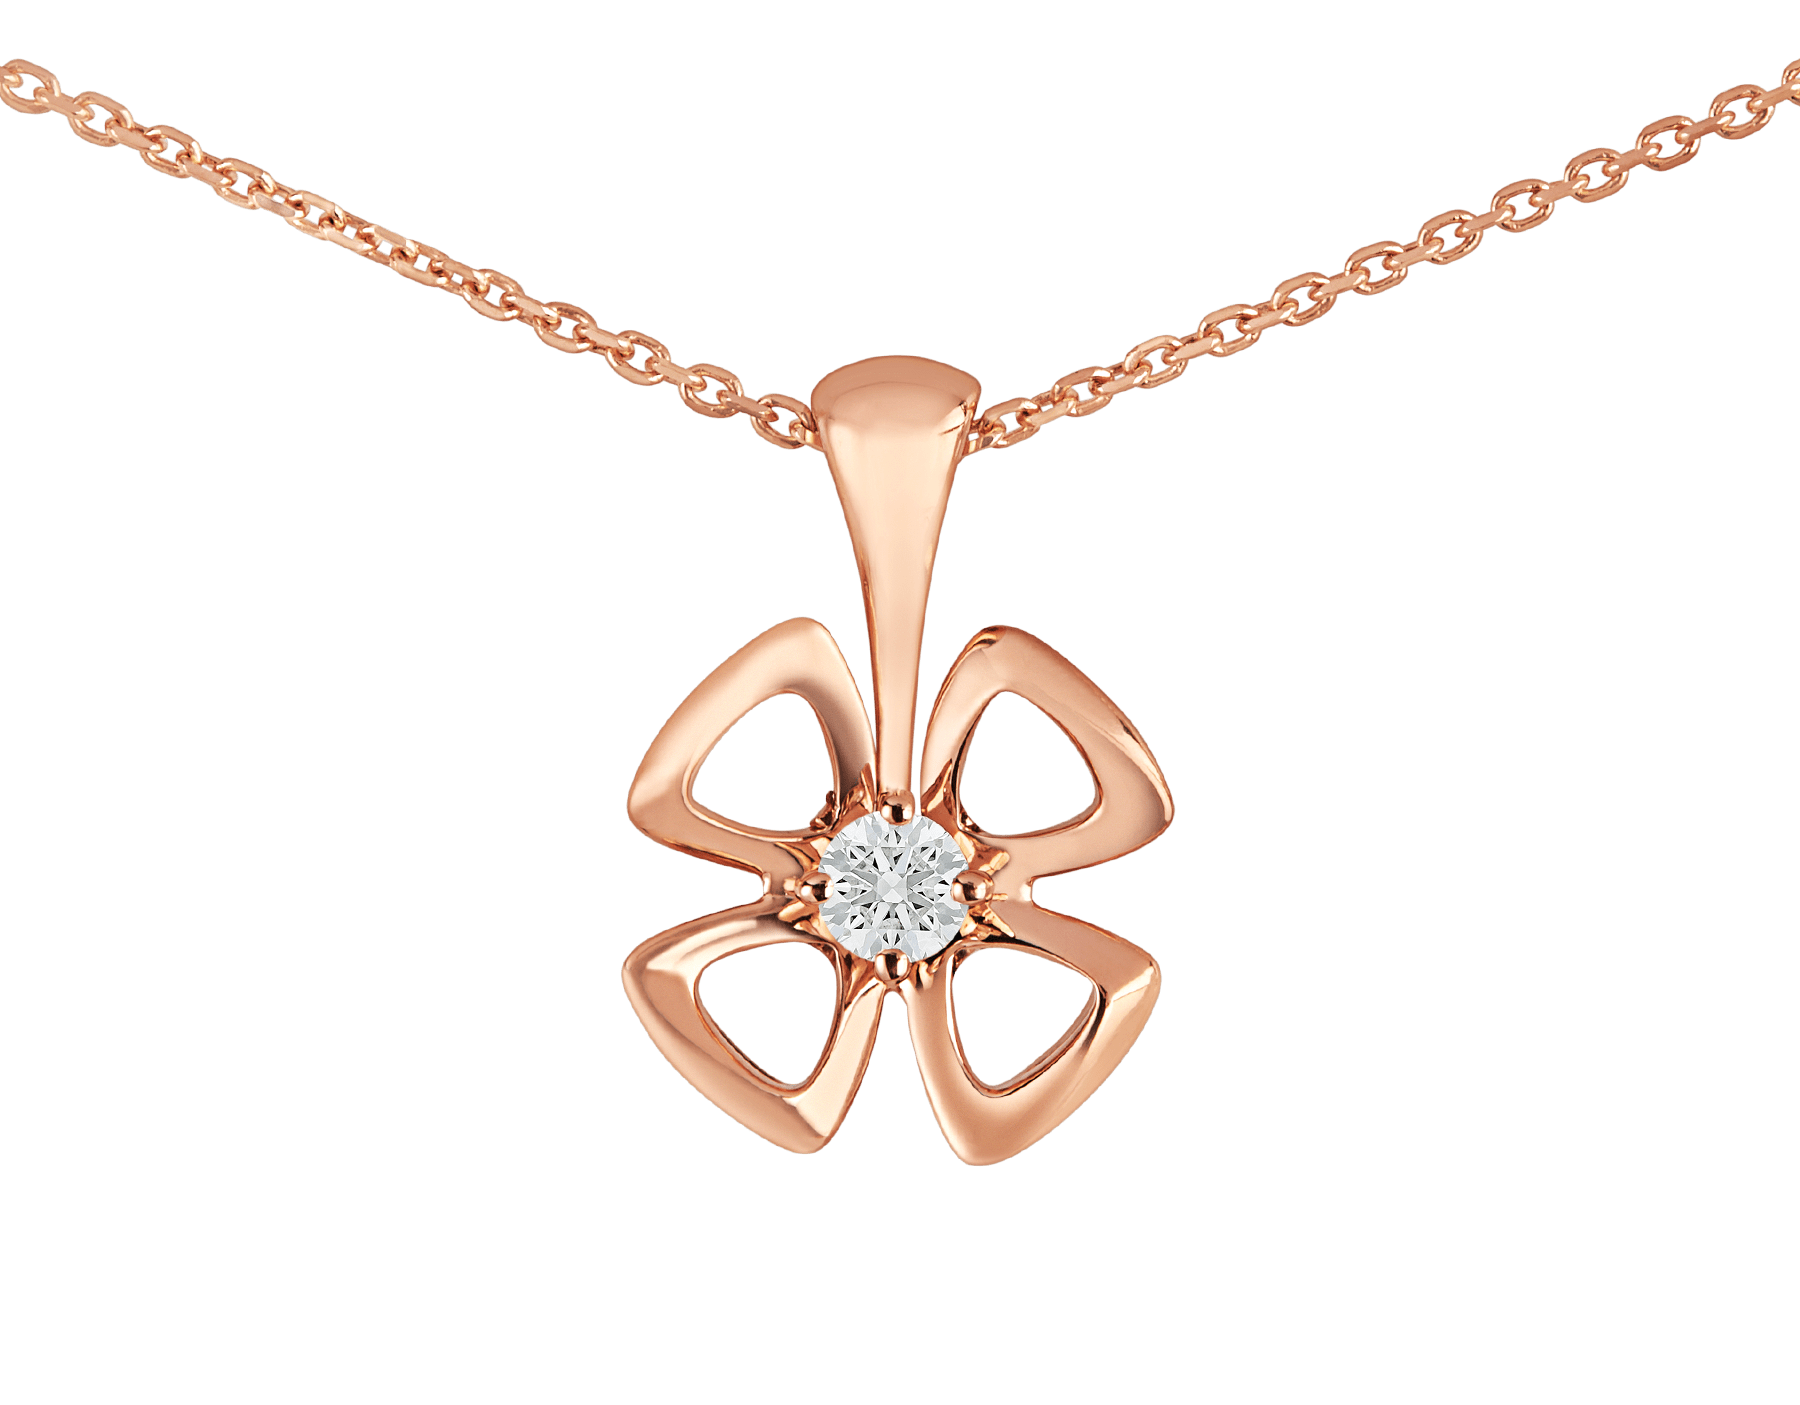 Collier Fiorever en or rose 18 K serti d'un diamant de centre 355324 image 3